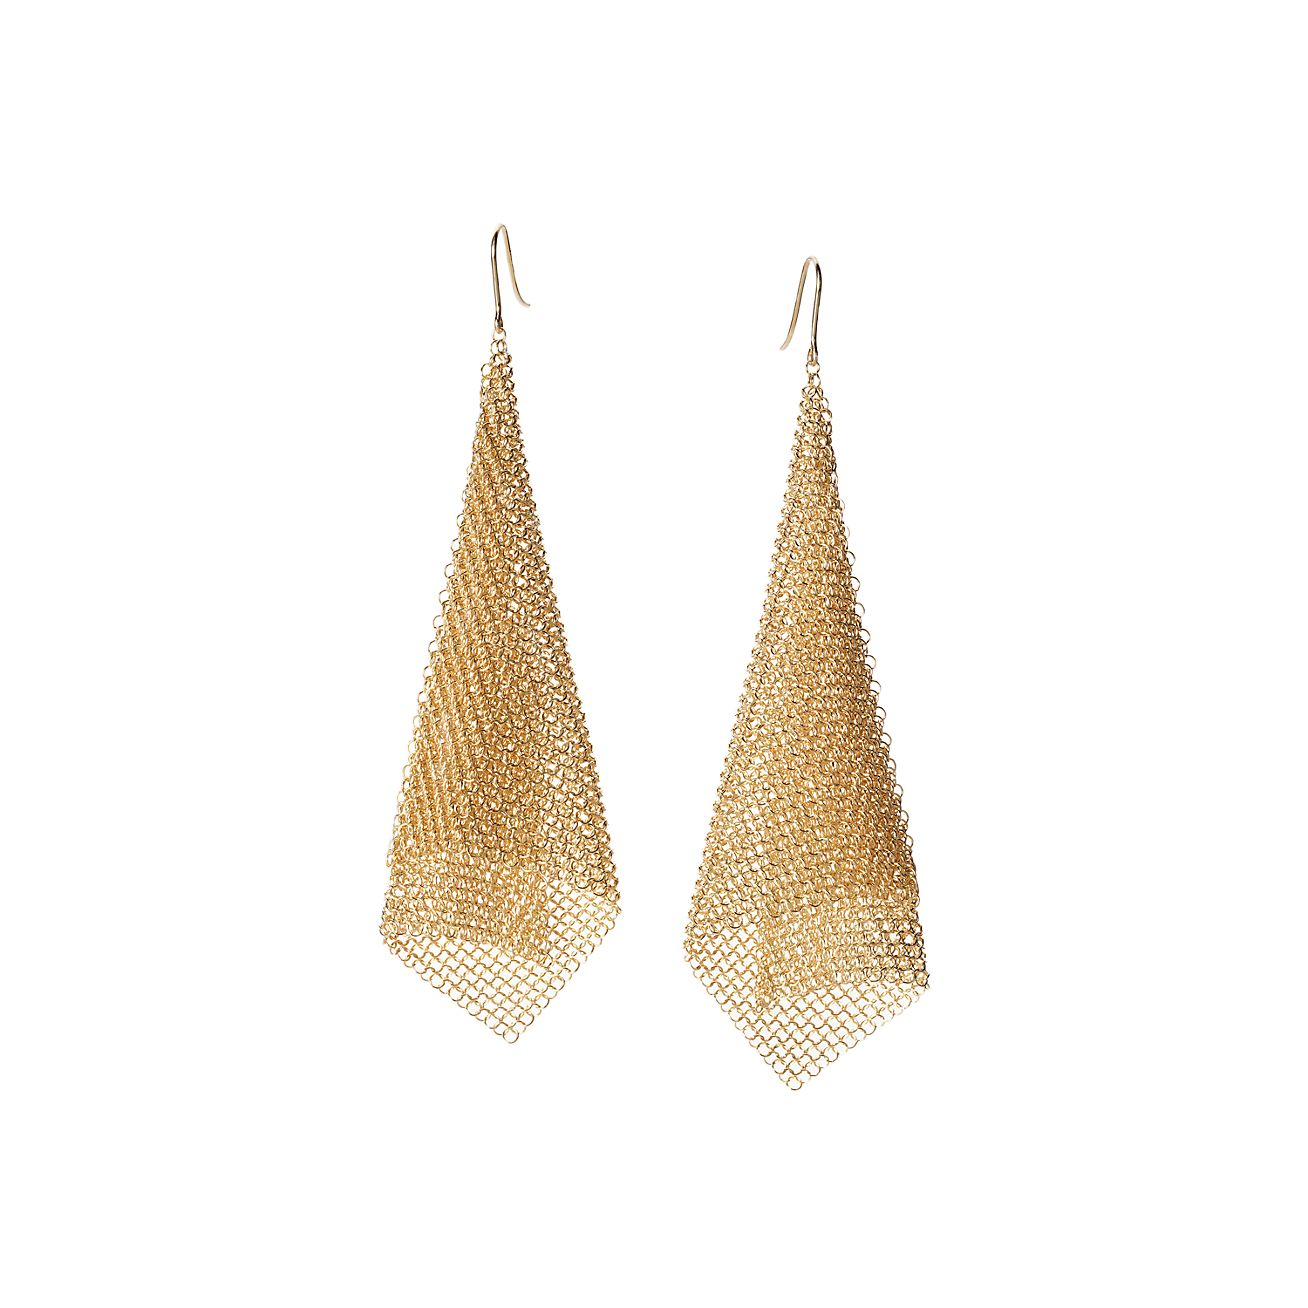 tiffany and co earrings gold